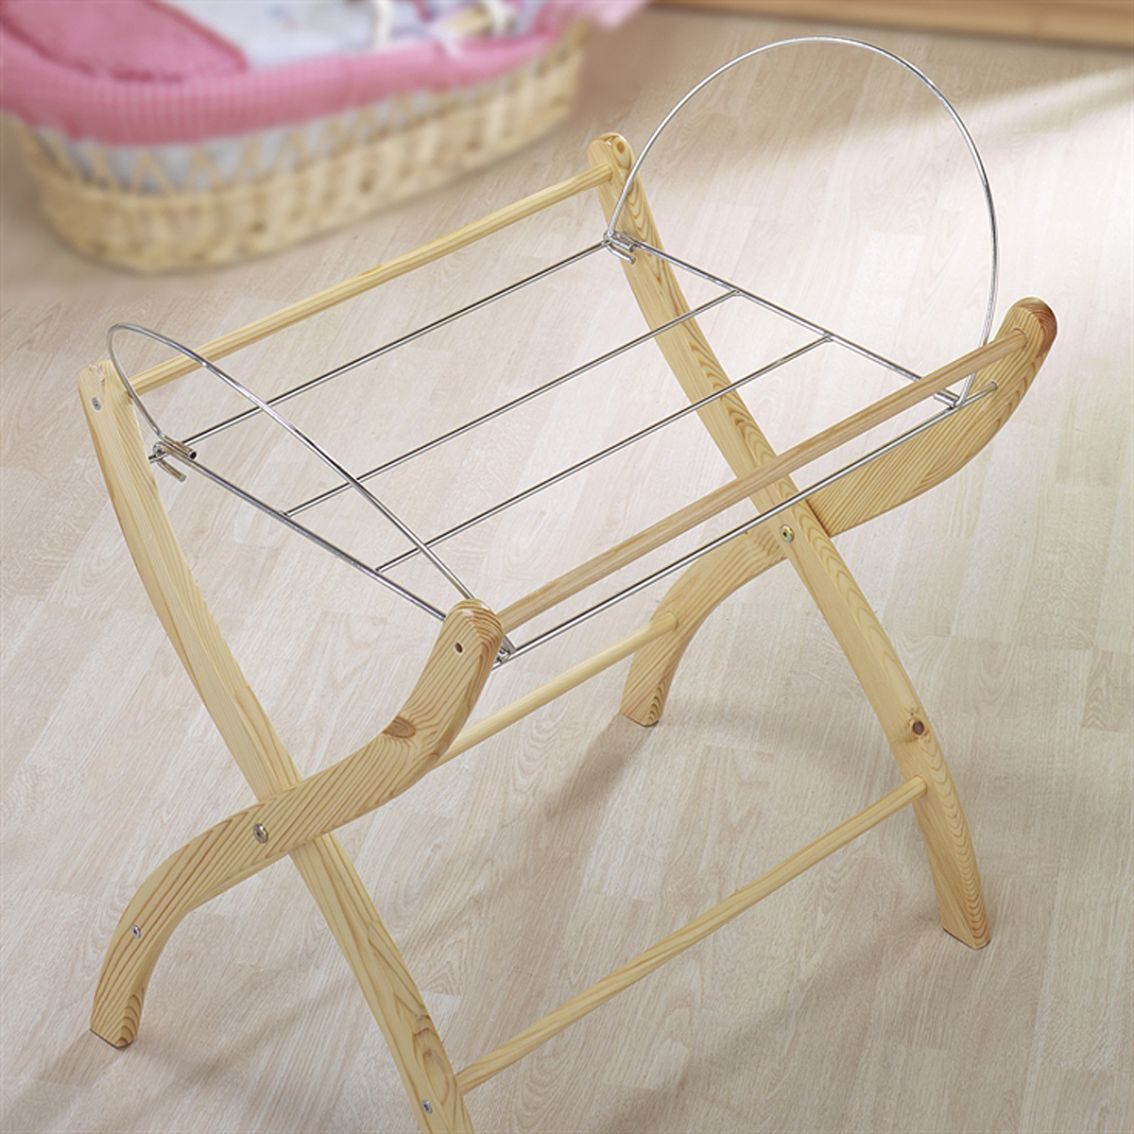 izziwotnot moses basket stand izziwotnot at w h watts. Black Bedroom Furniture Sets. Home Design Ideas